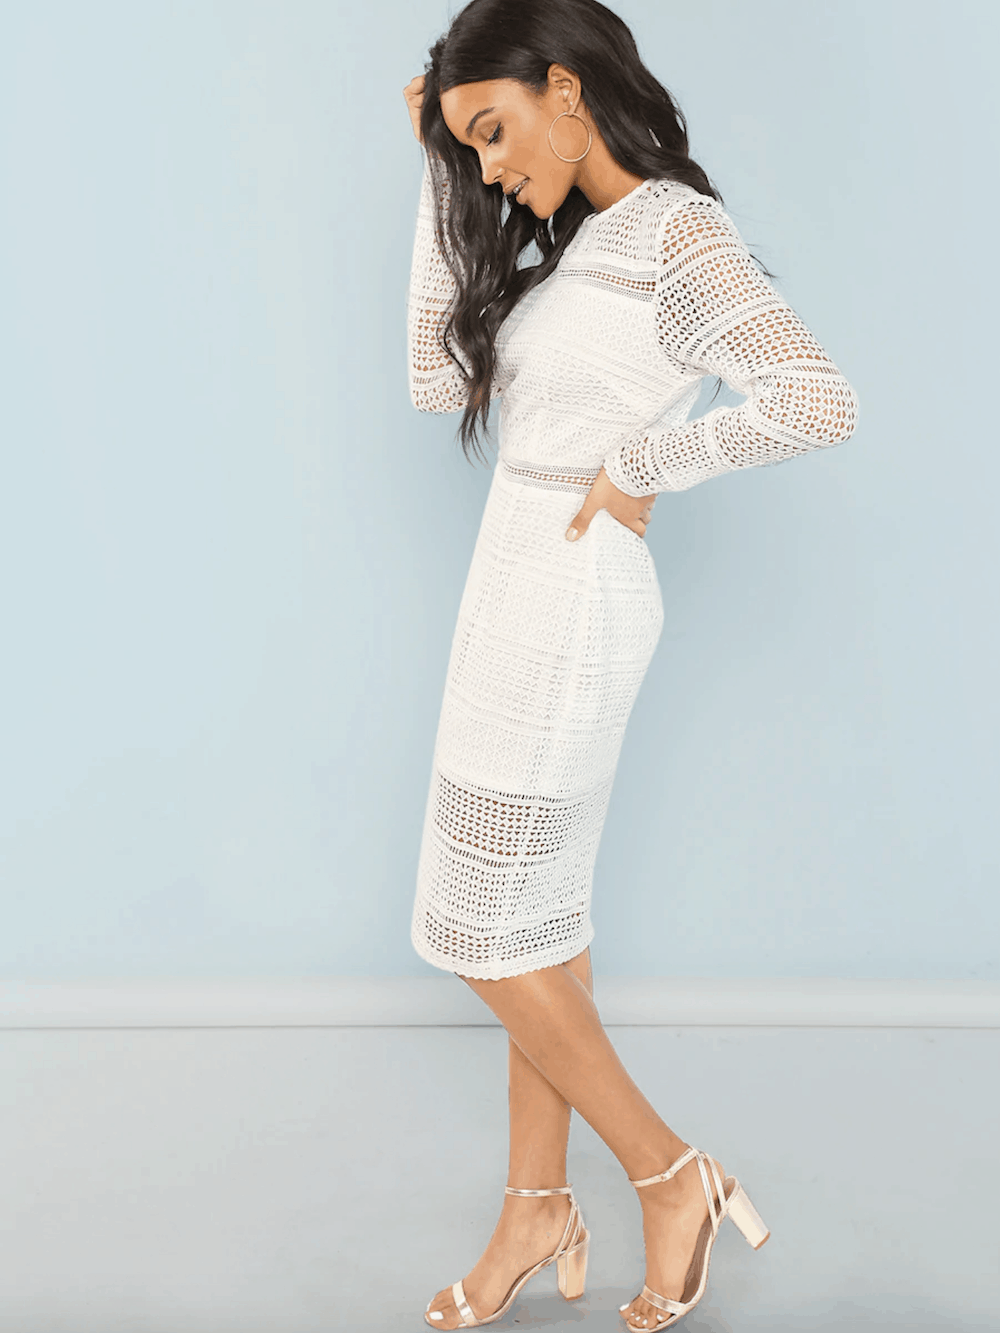 Bridal Shower Dress for the Bride White Guipure Lace Overlay Bodycon Dress